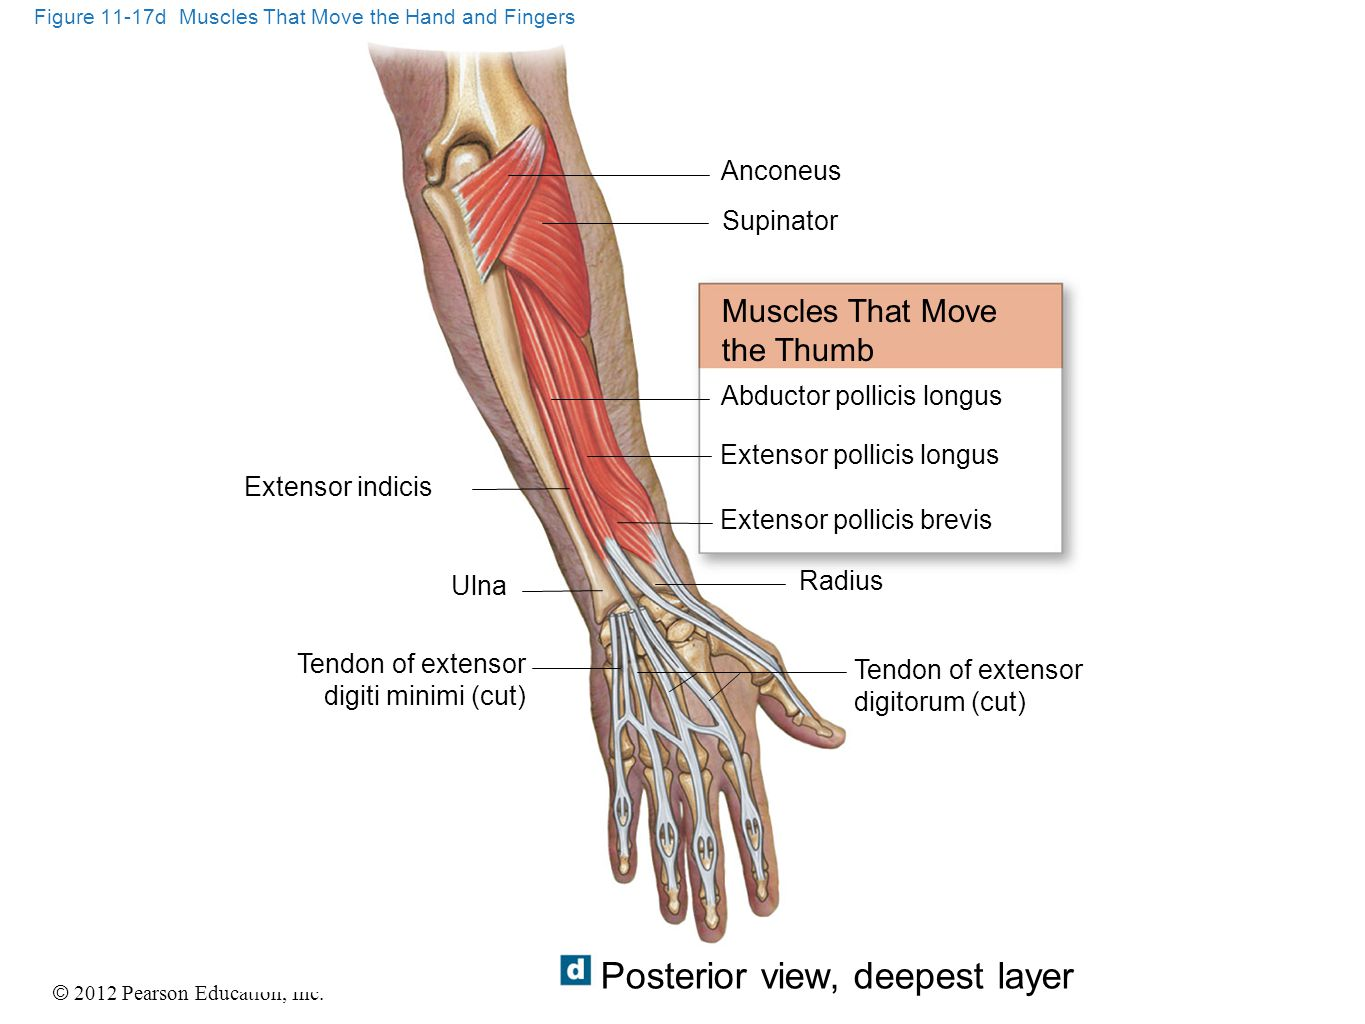 Figure 11-17d Muscles That Move the Hand and Fingers